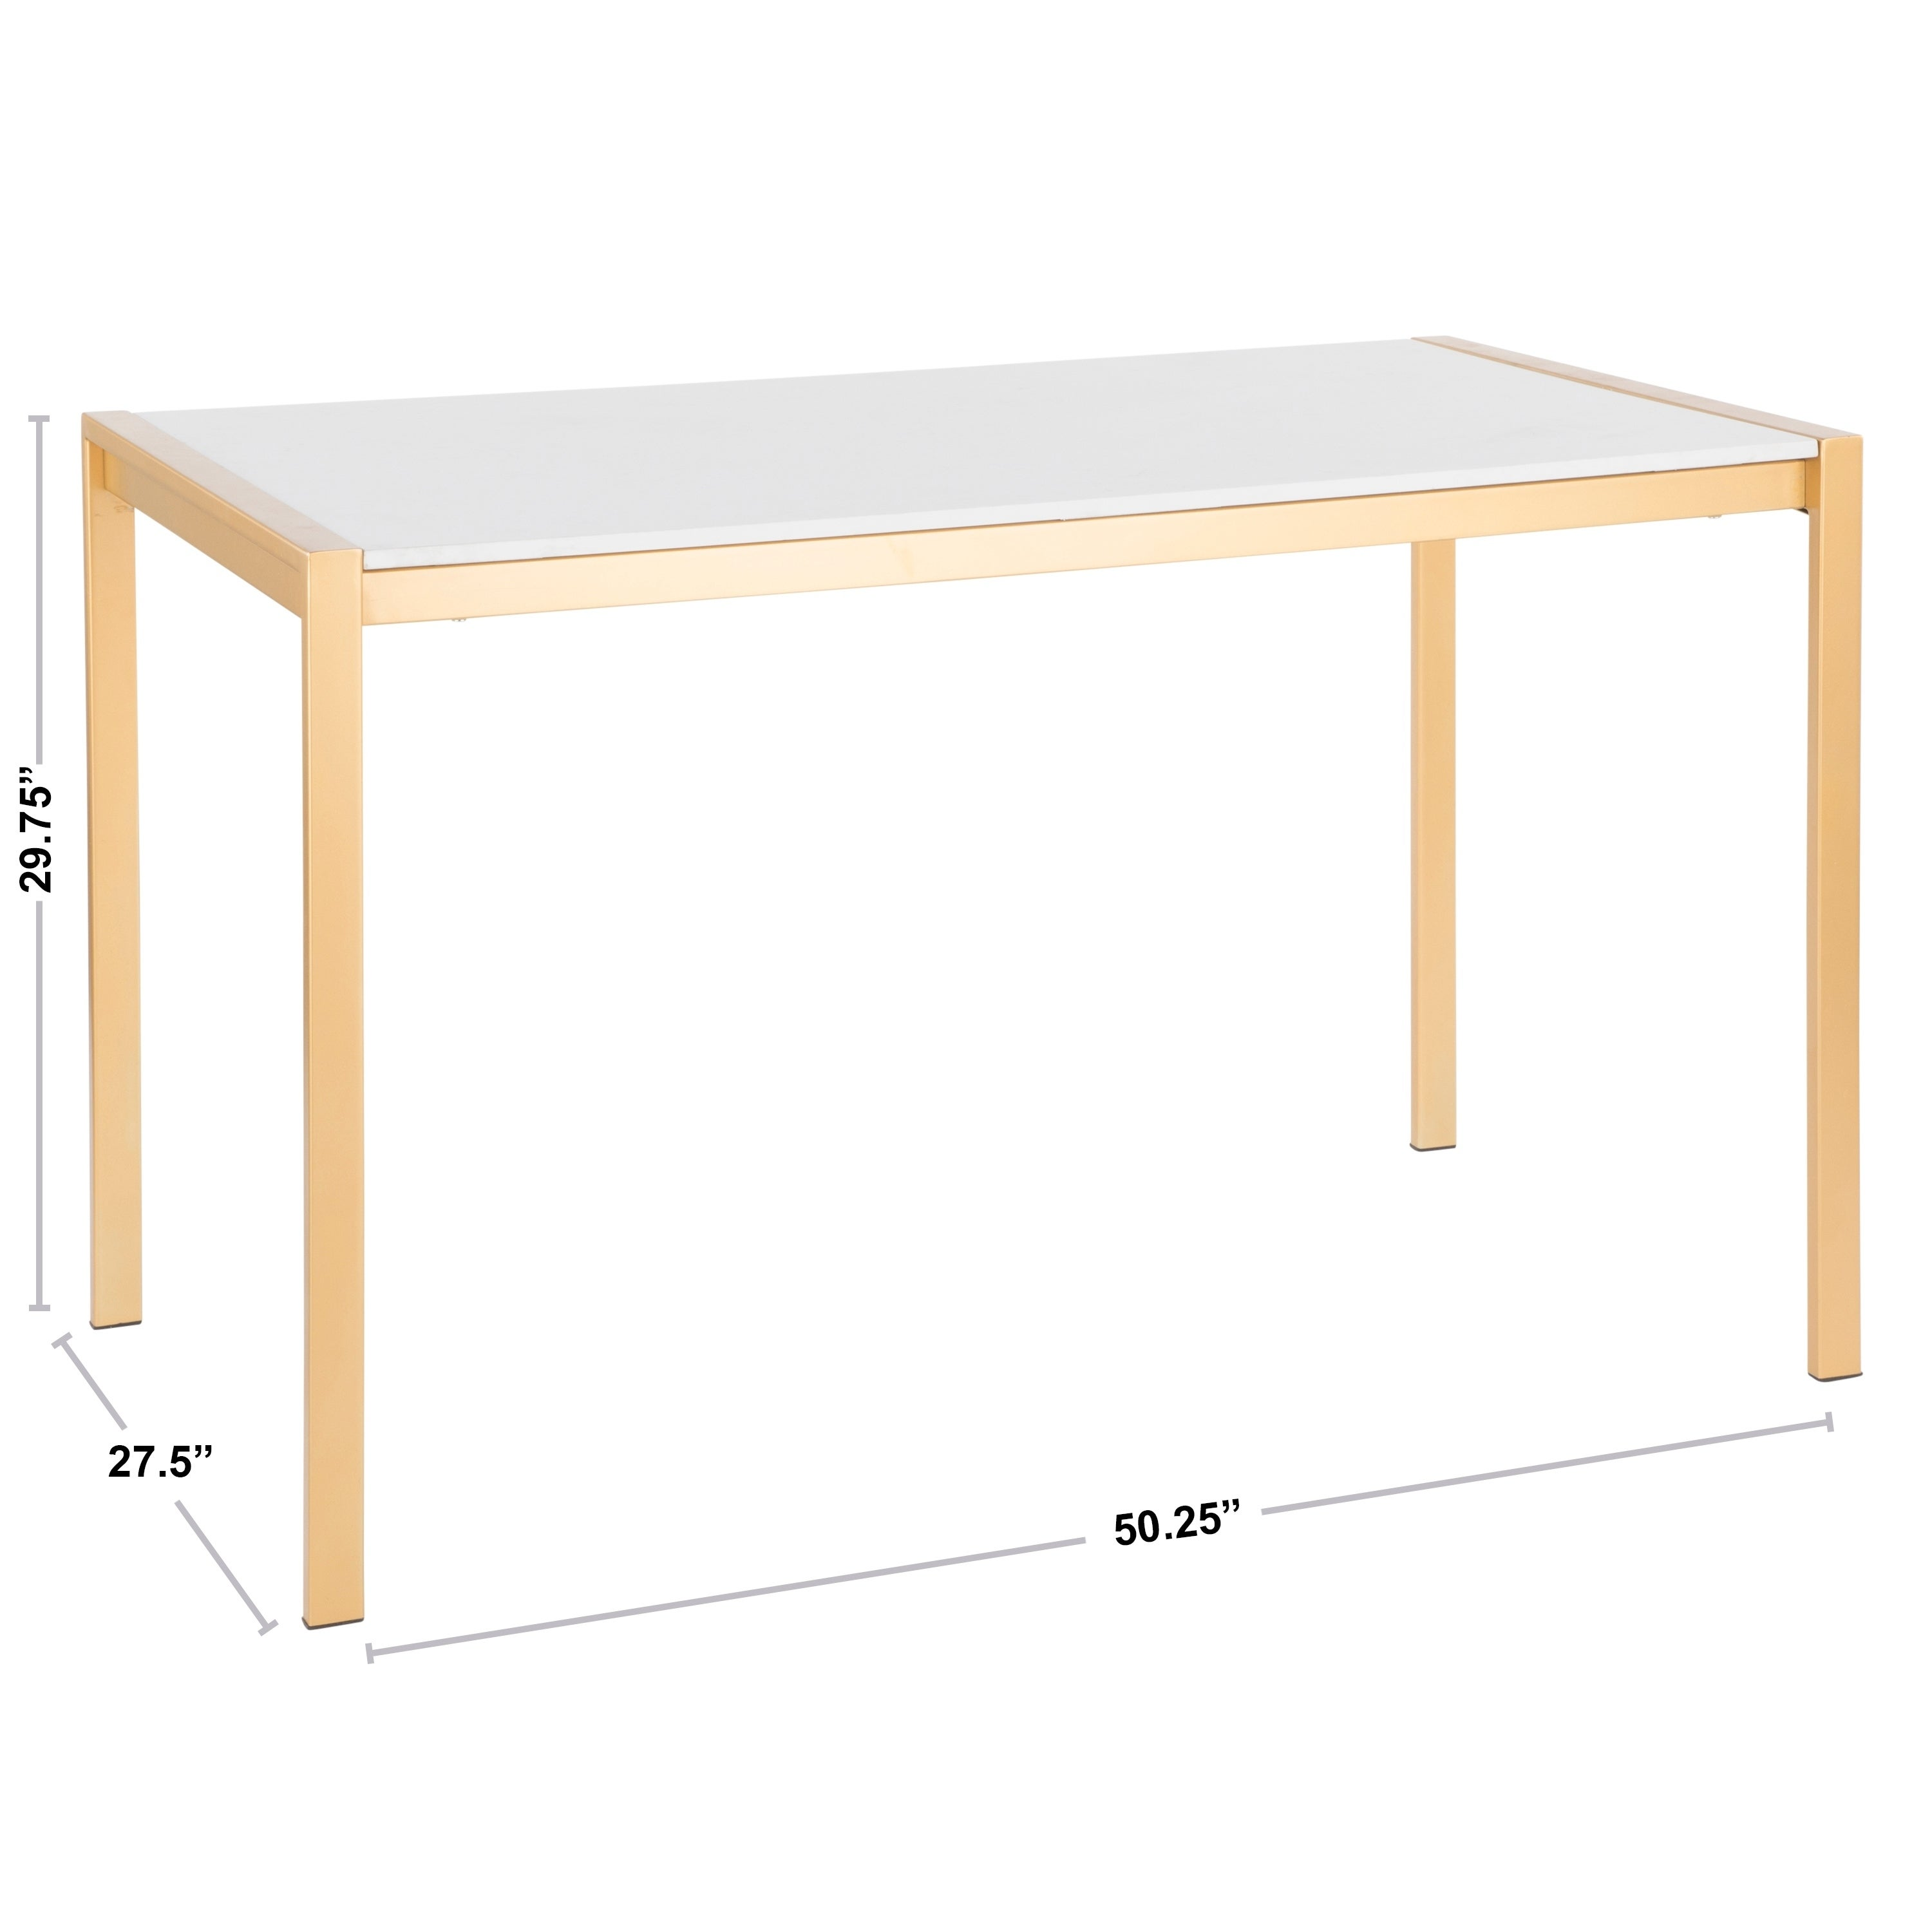 Lumisource Fuji Gold Dining Table White Marble On Free Shipping Today 24238474